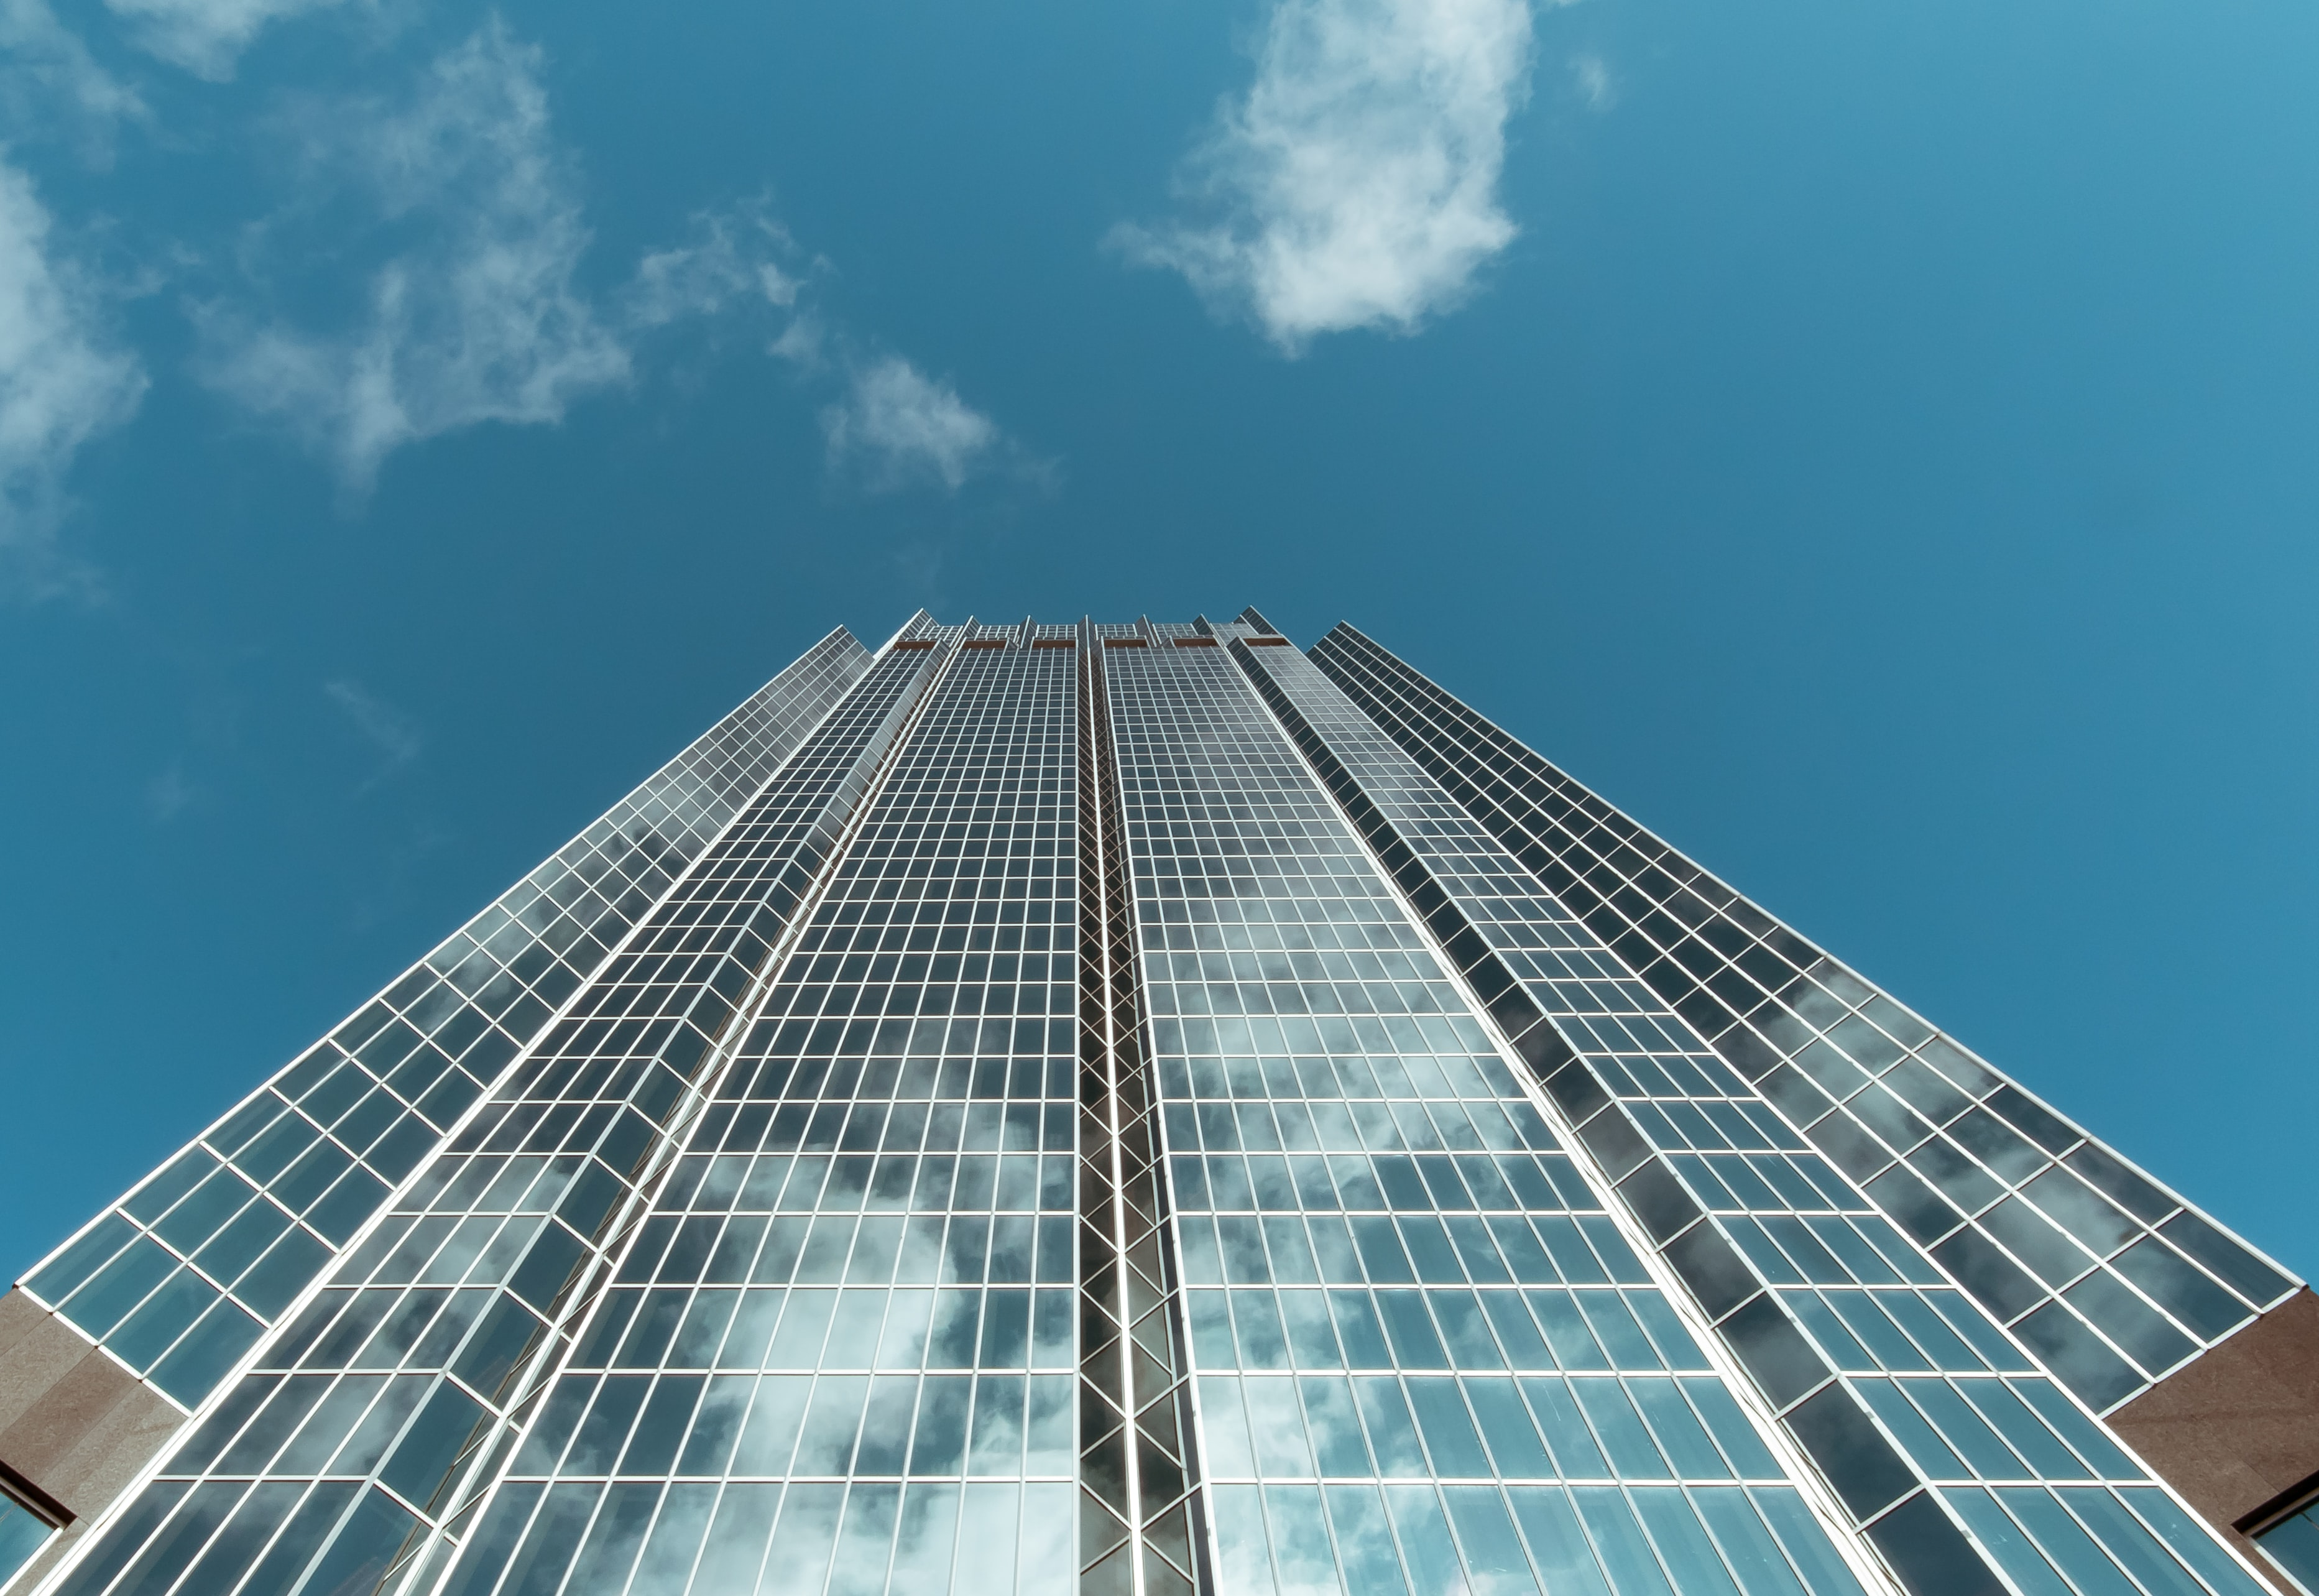 worm's eye view of high rise building during daytime